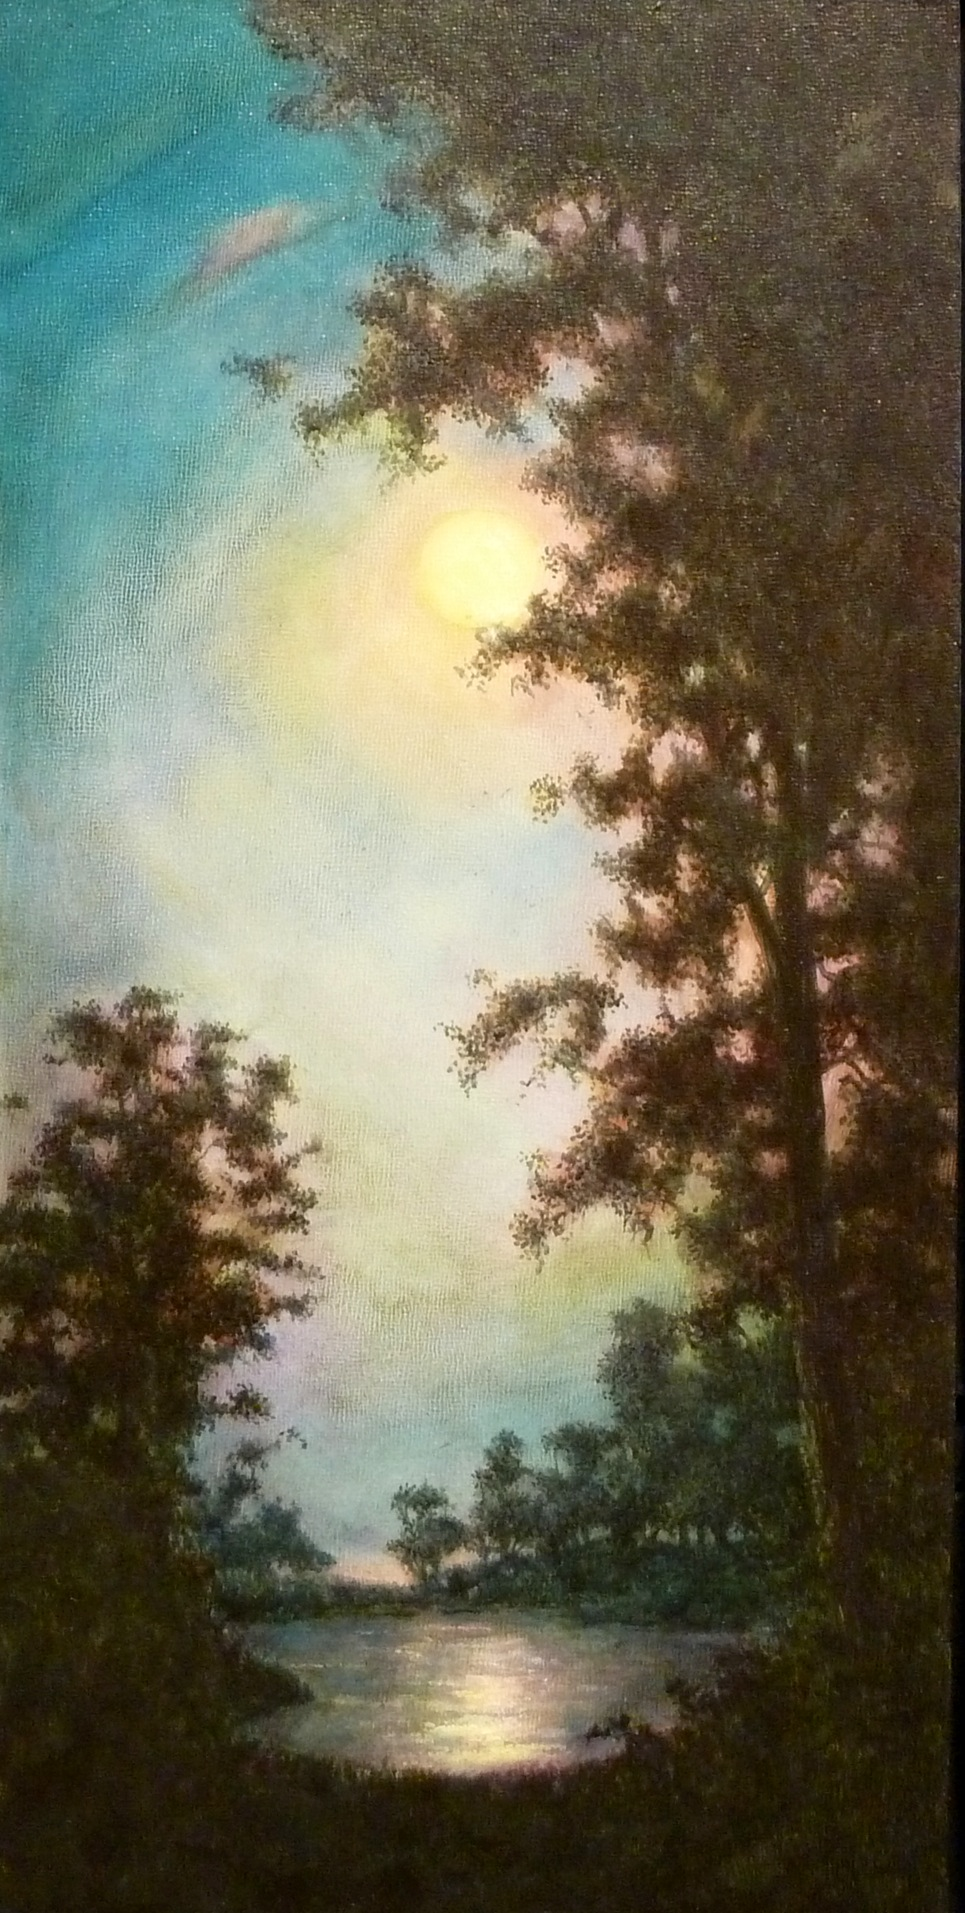 Full Moon Over Story Lake Montana - SOLD